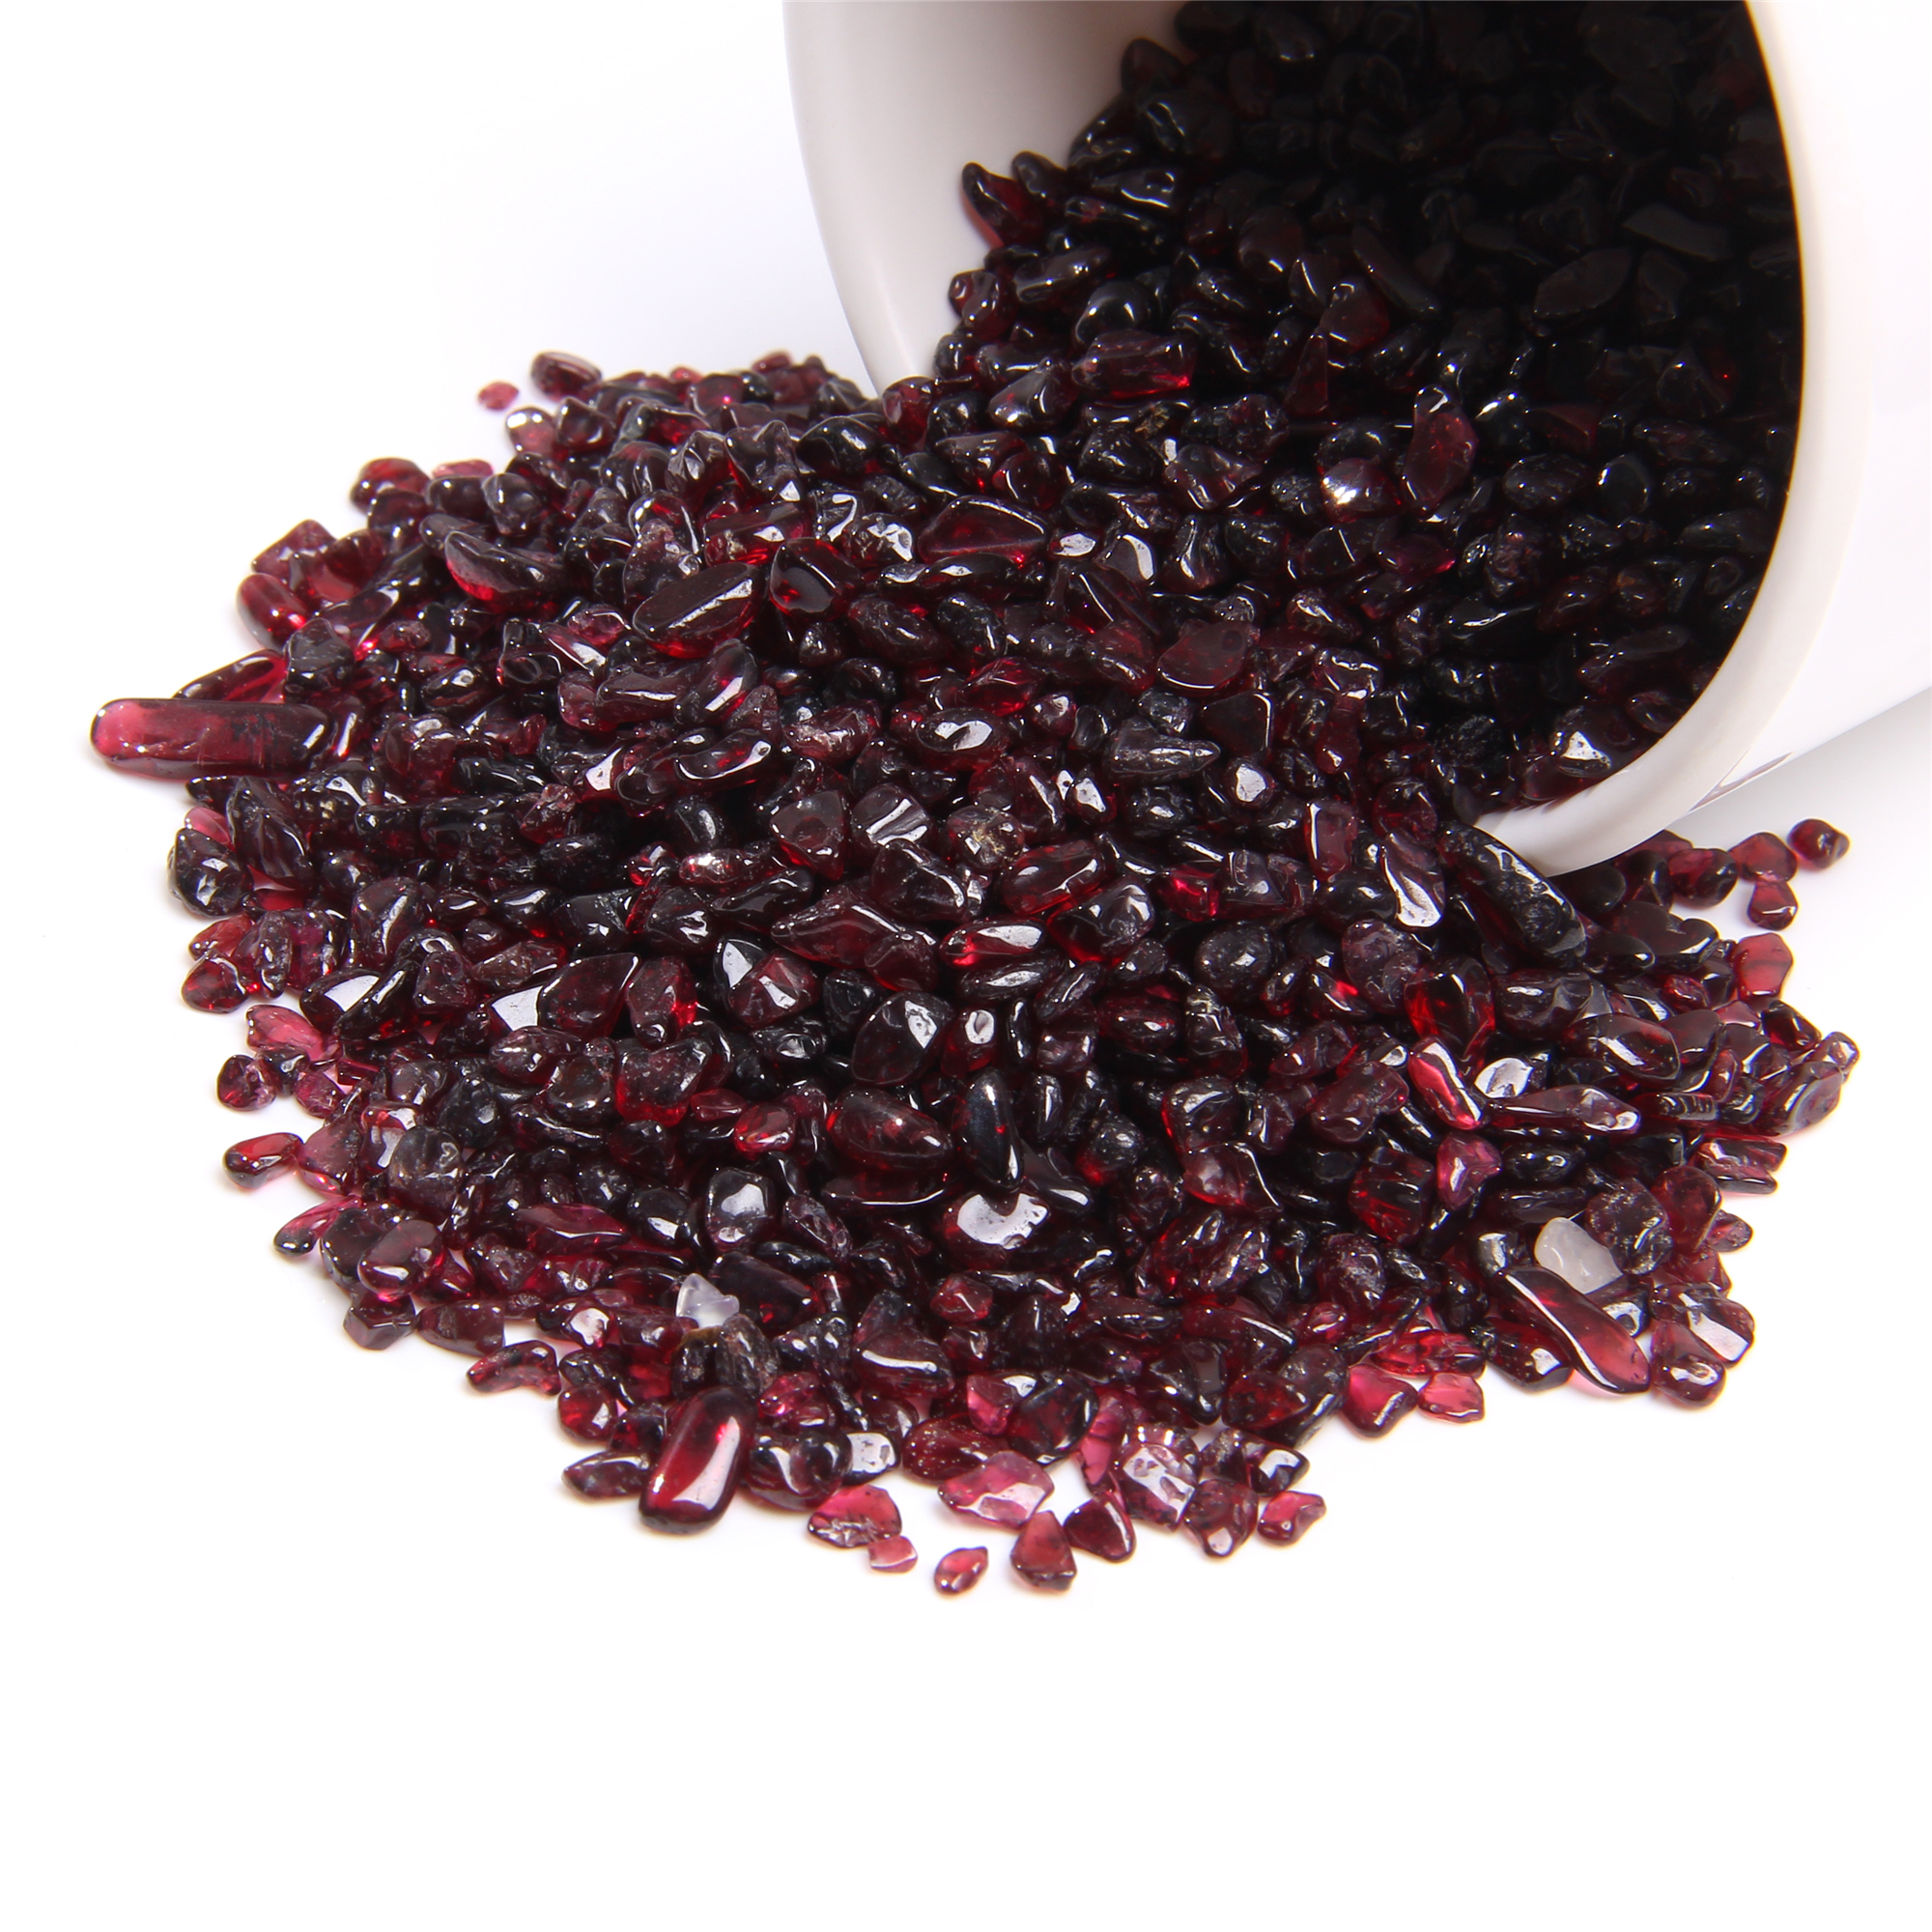 Beads Stone Garnet-Chips Nugget Tiny Natural Jewelry Craft-Decor Diy-Making Loose